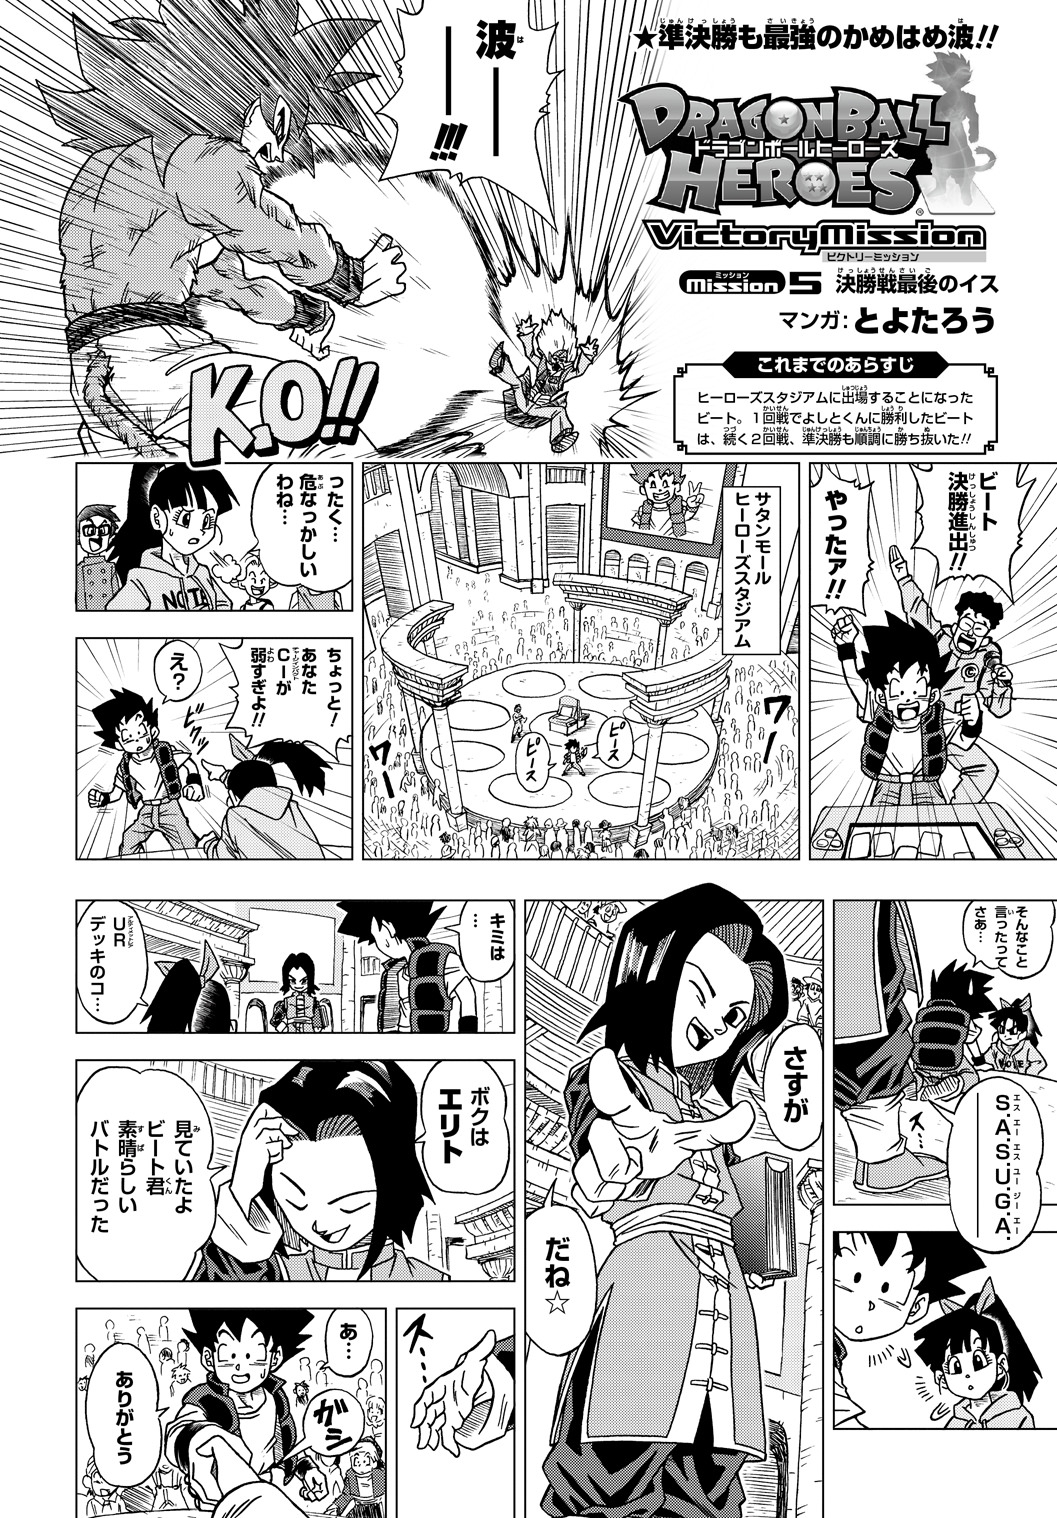 Dragon Ball Heroes Victory Mission Chapitre 005